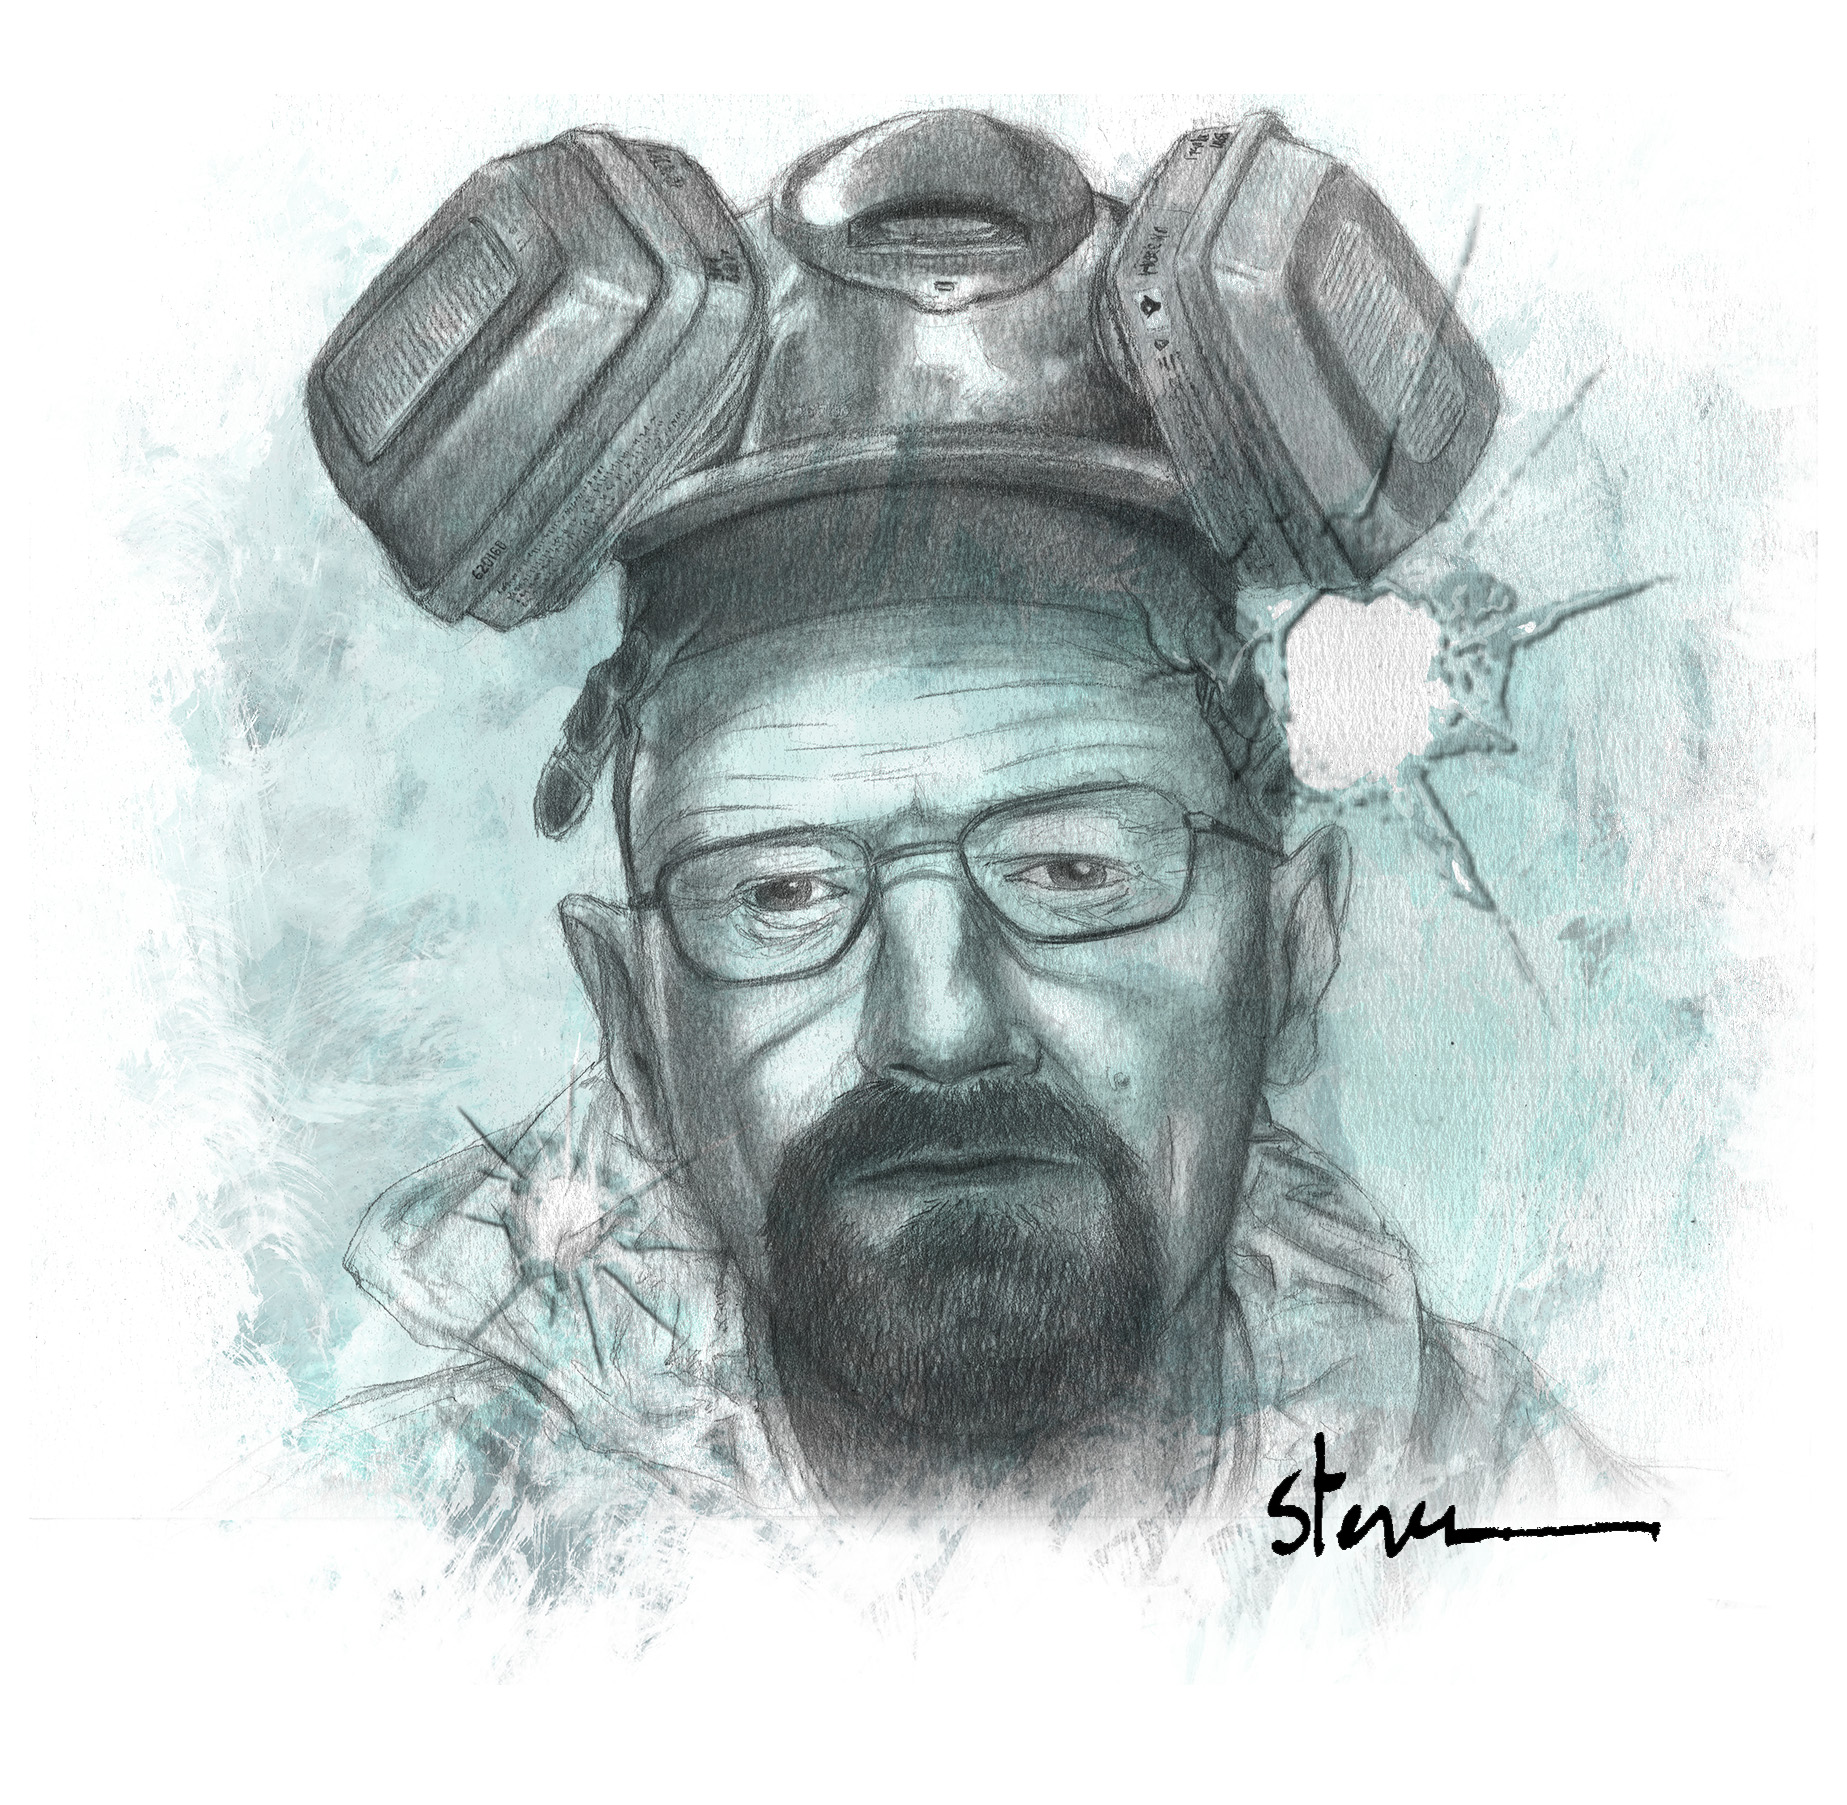 Portrait walter white